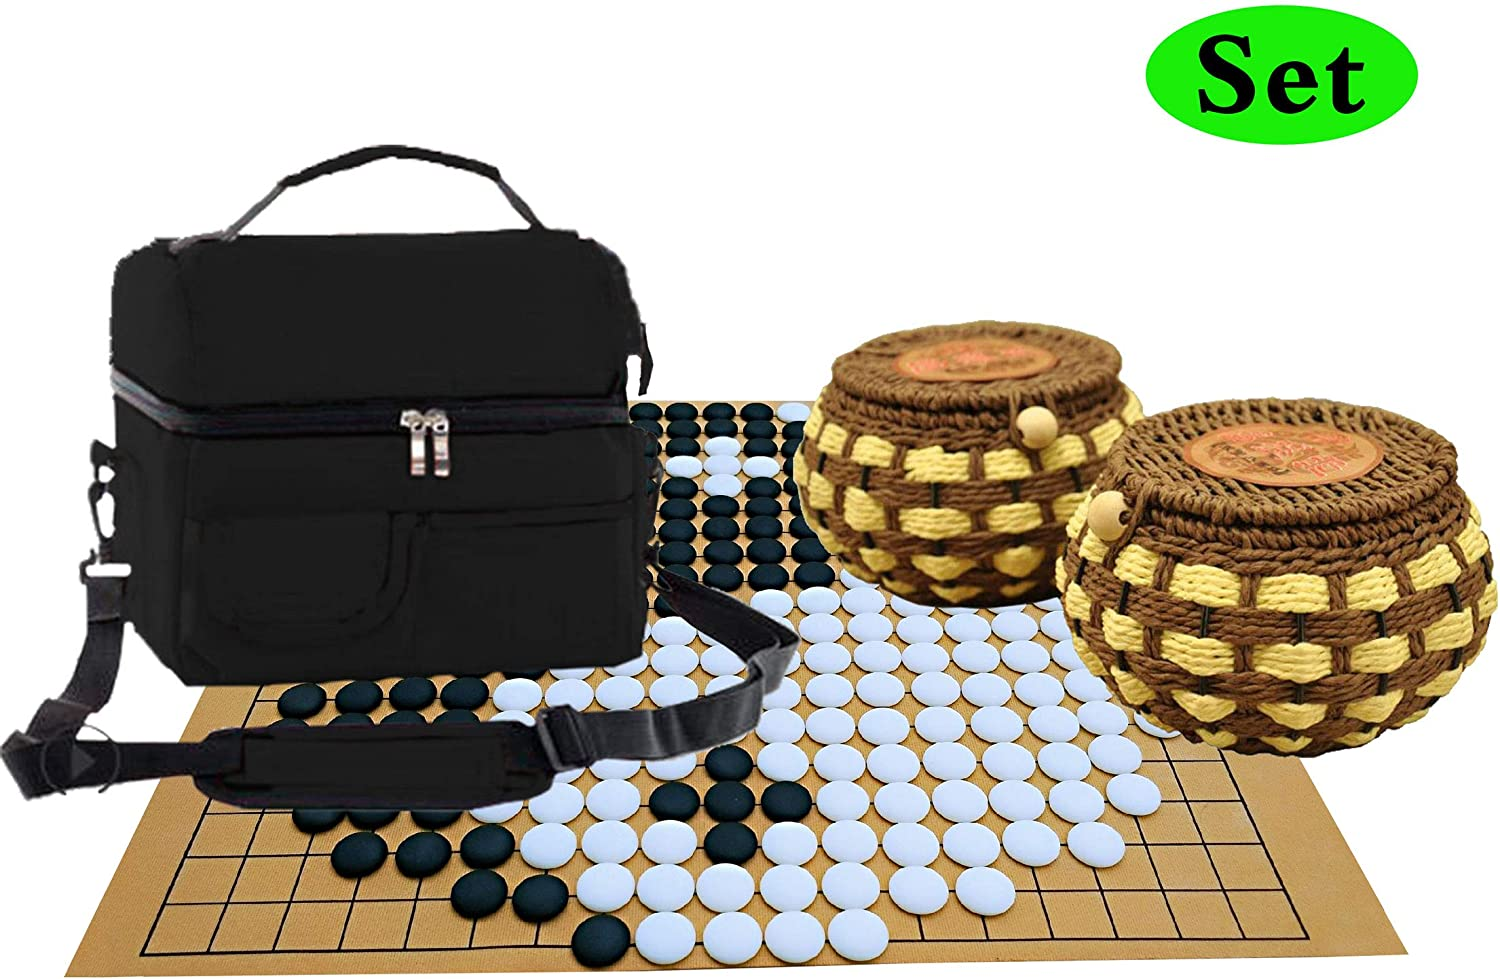 Go Board Game Set Yunzi Stones Top Strategy Game of Go Set 19x19 Board Games   Go Bolws   Nylon BagConvenient 2 Players Travel Games